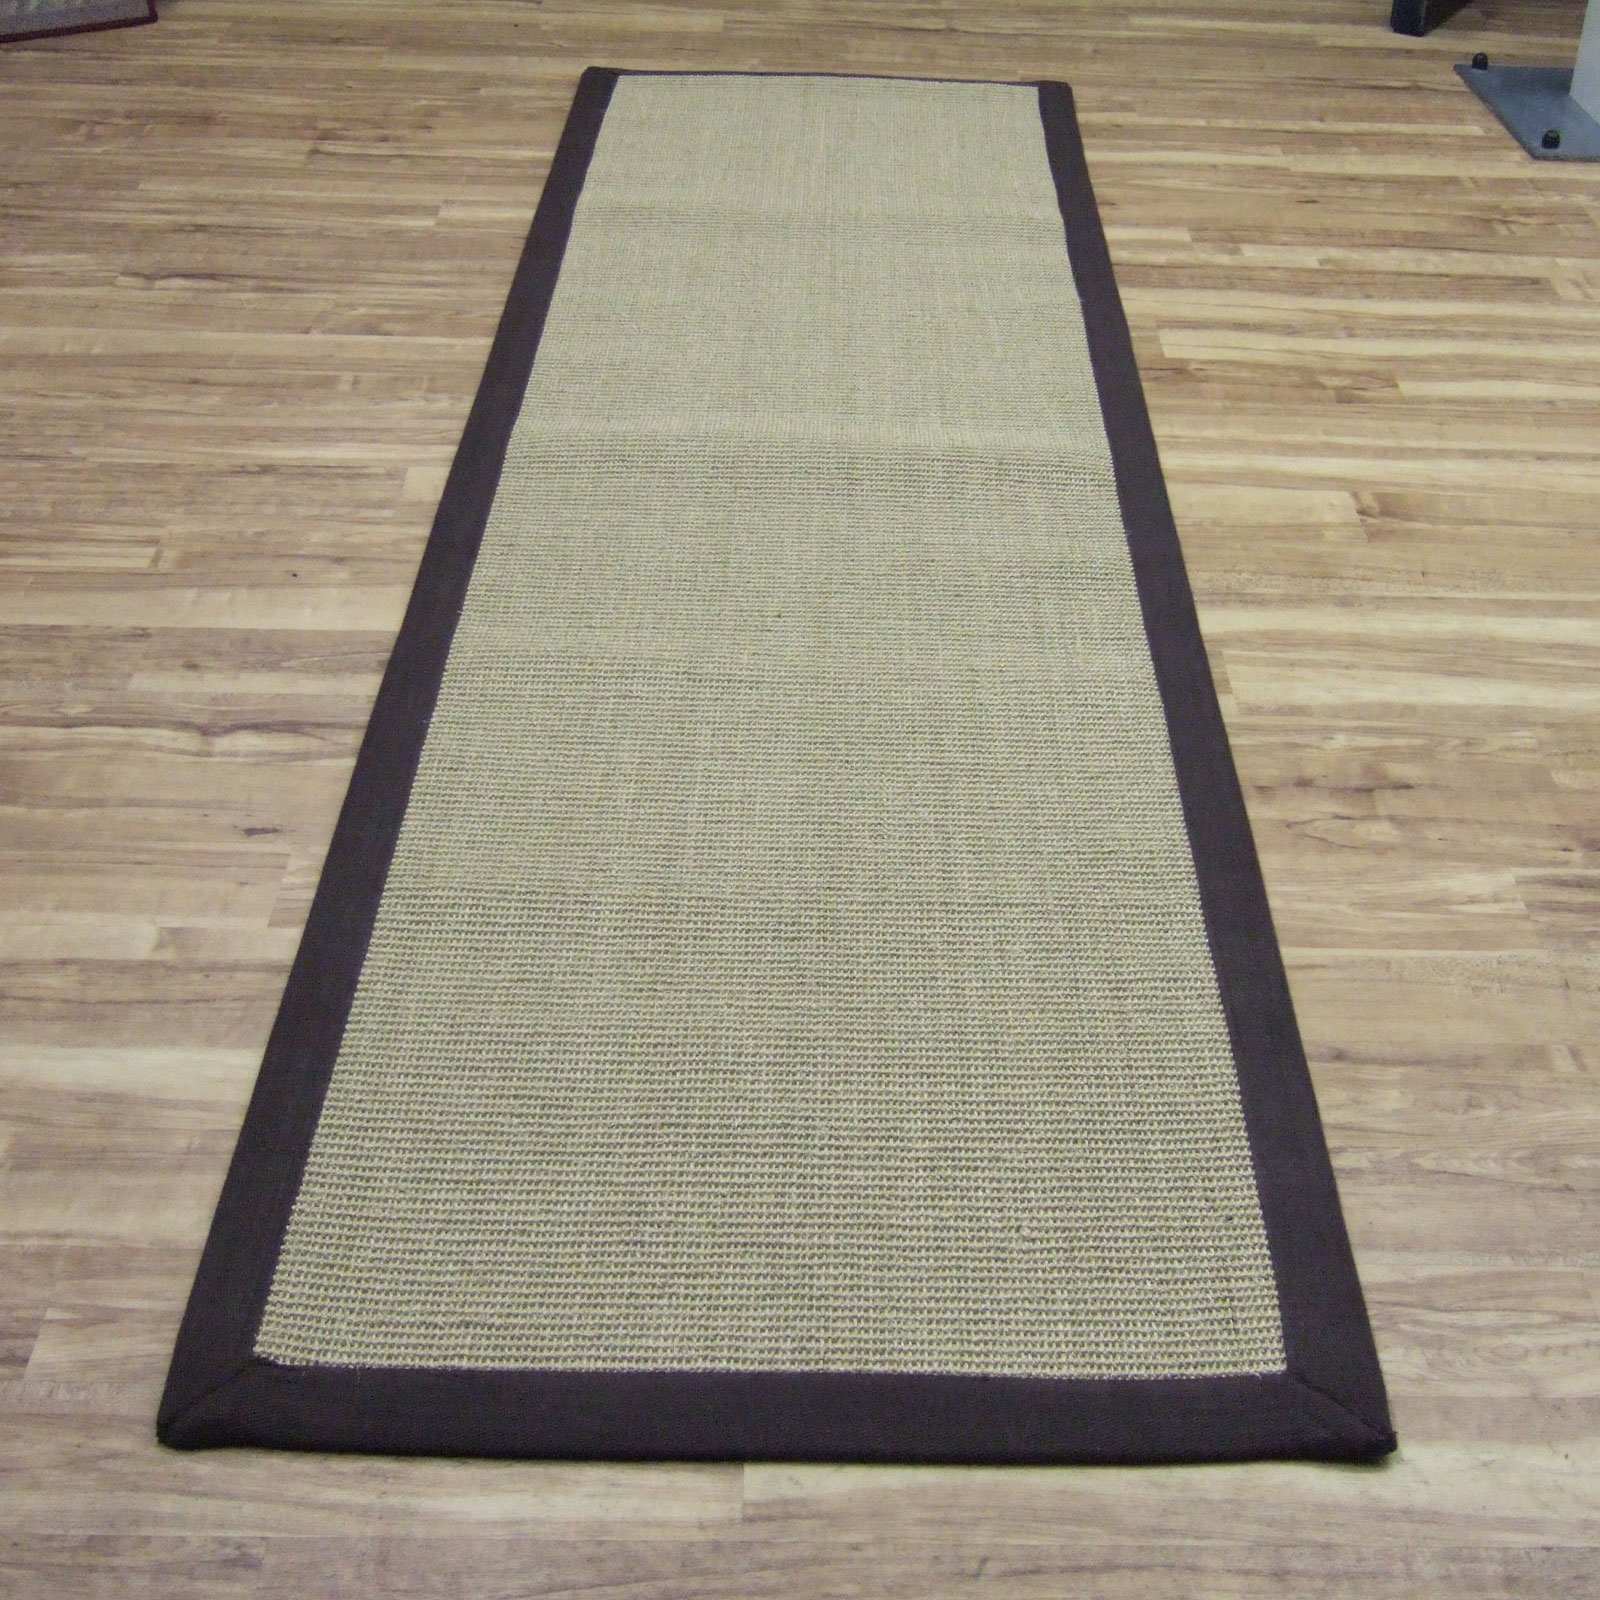 Hall Rugs Uk Roselawnlutheran Regarding Extra Long Runners For Hallway (View 18 of 20)